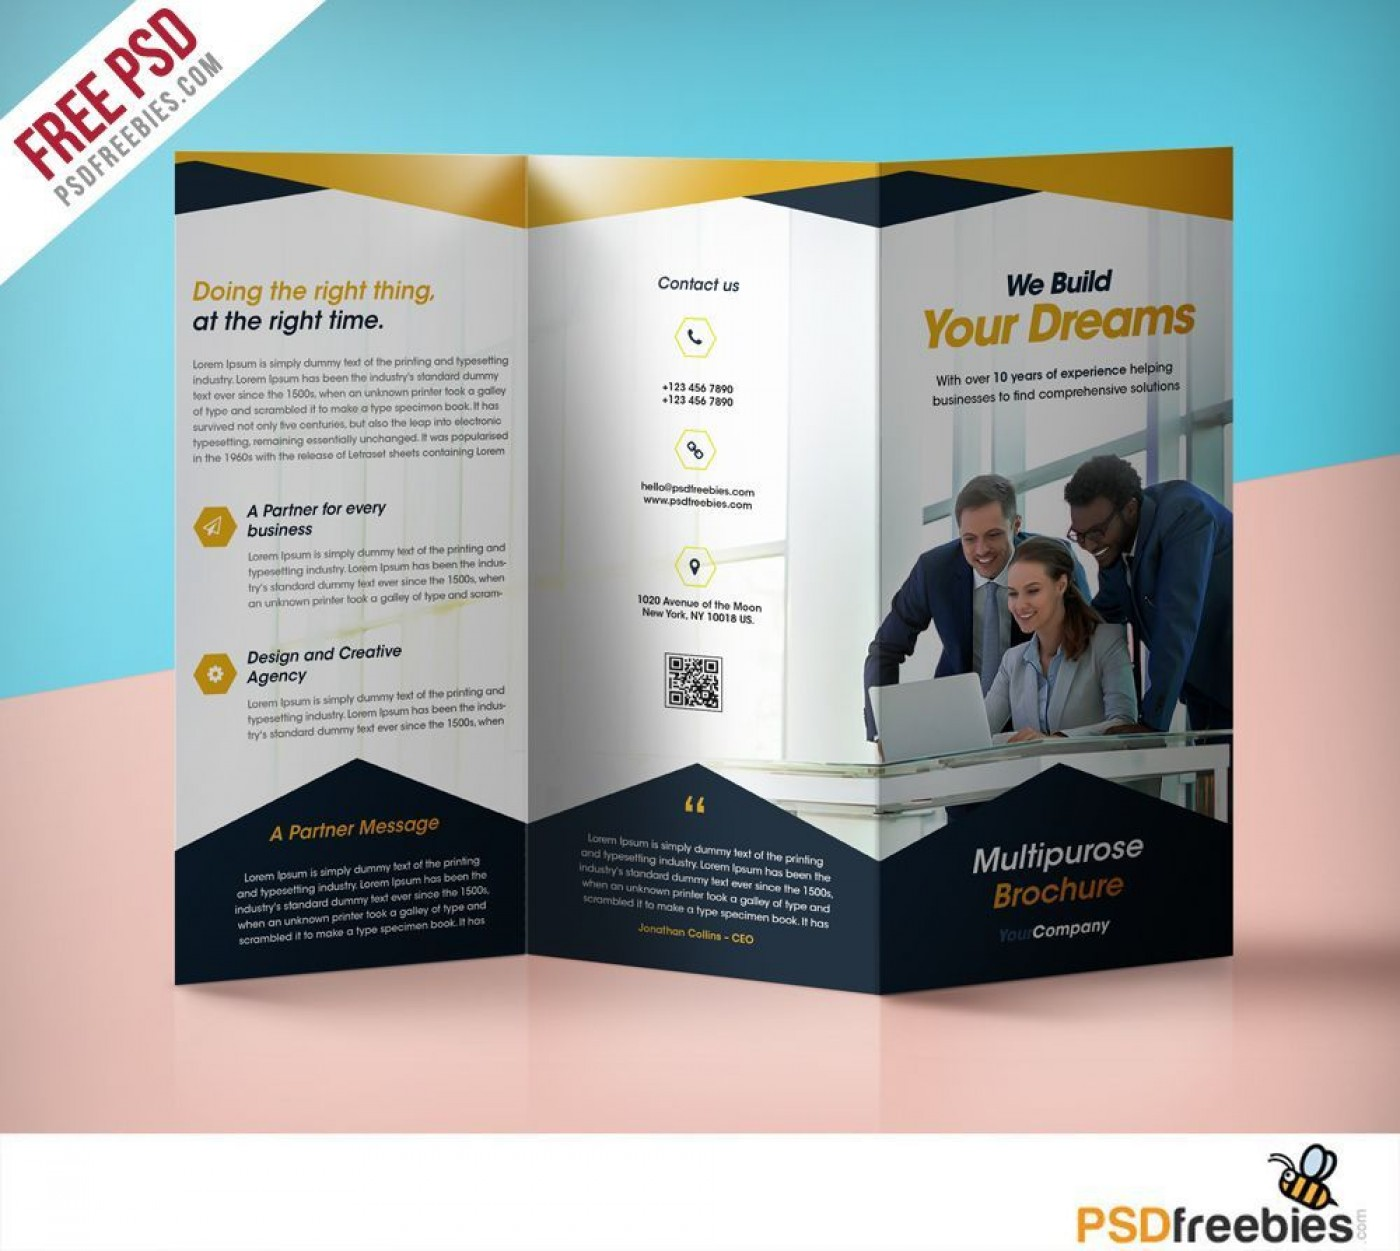 000 Fascinating Free Brochure Template Psd File Front And Back Inspiration 1400